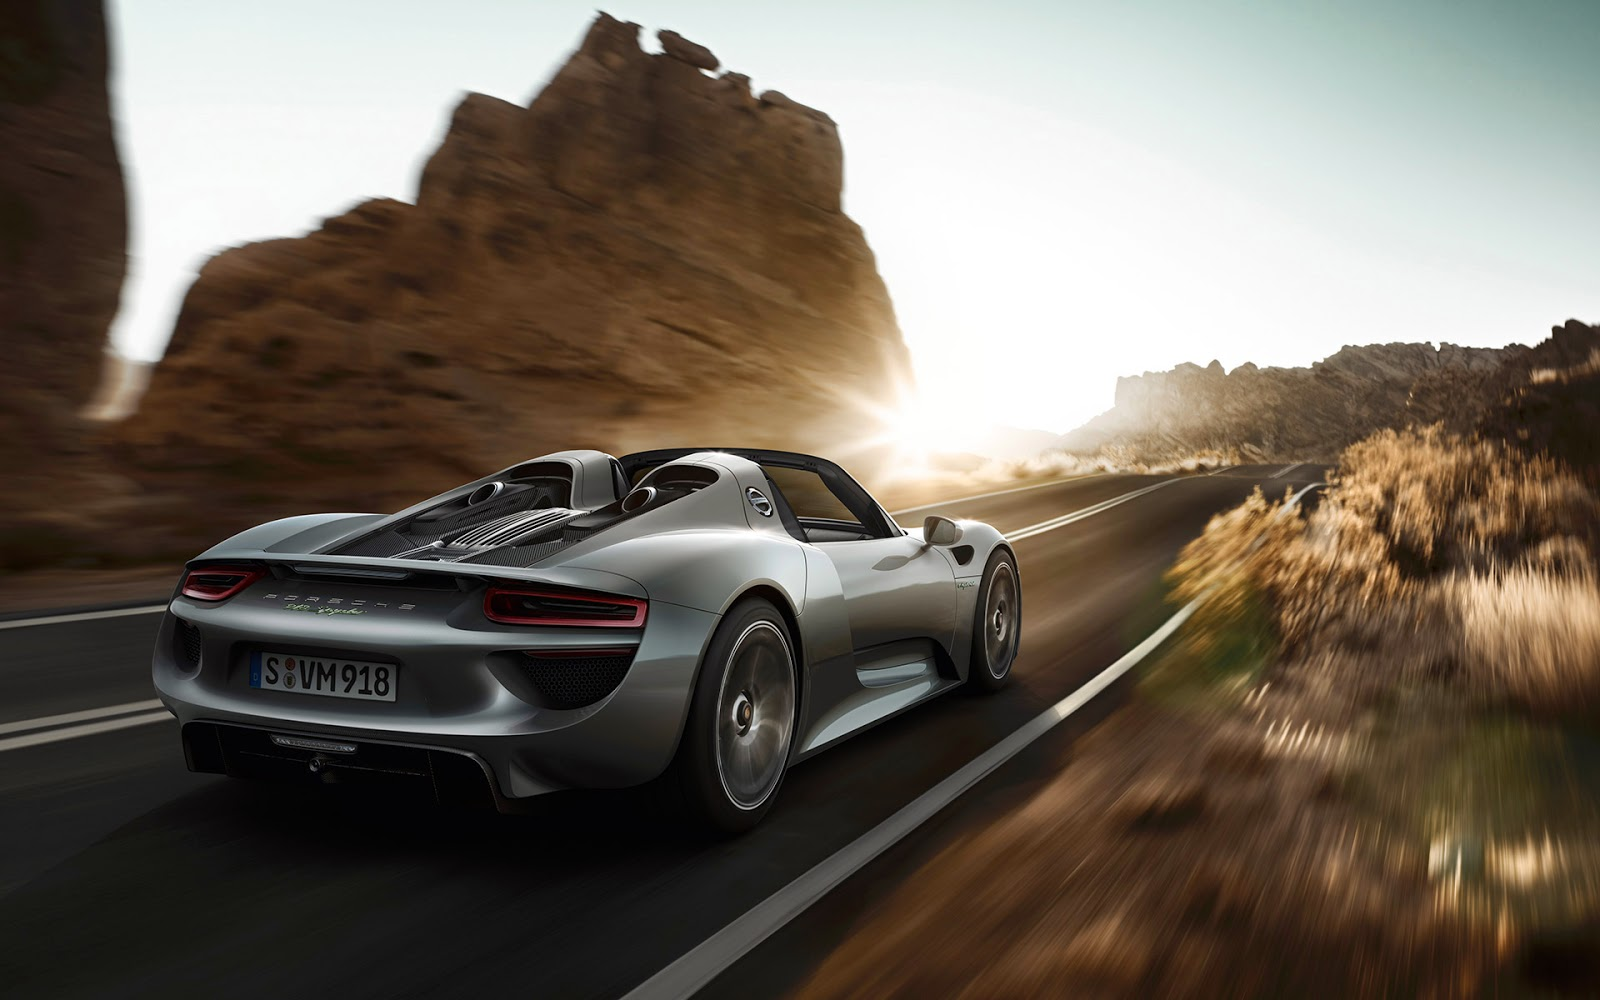 porsche 918 spyder on road wallpaper - Porsche 918 Spyder Wallpaper